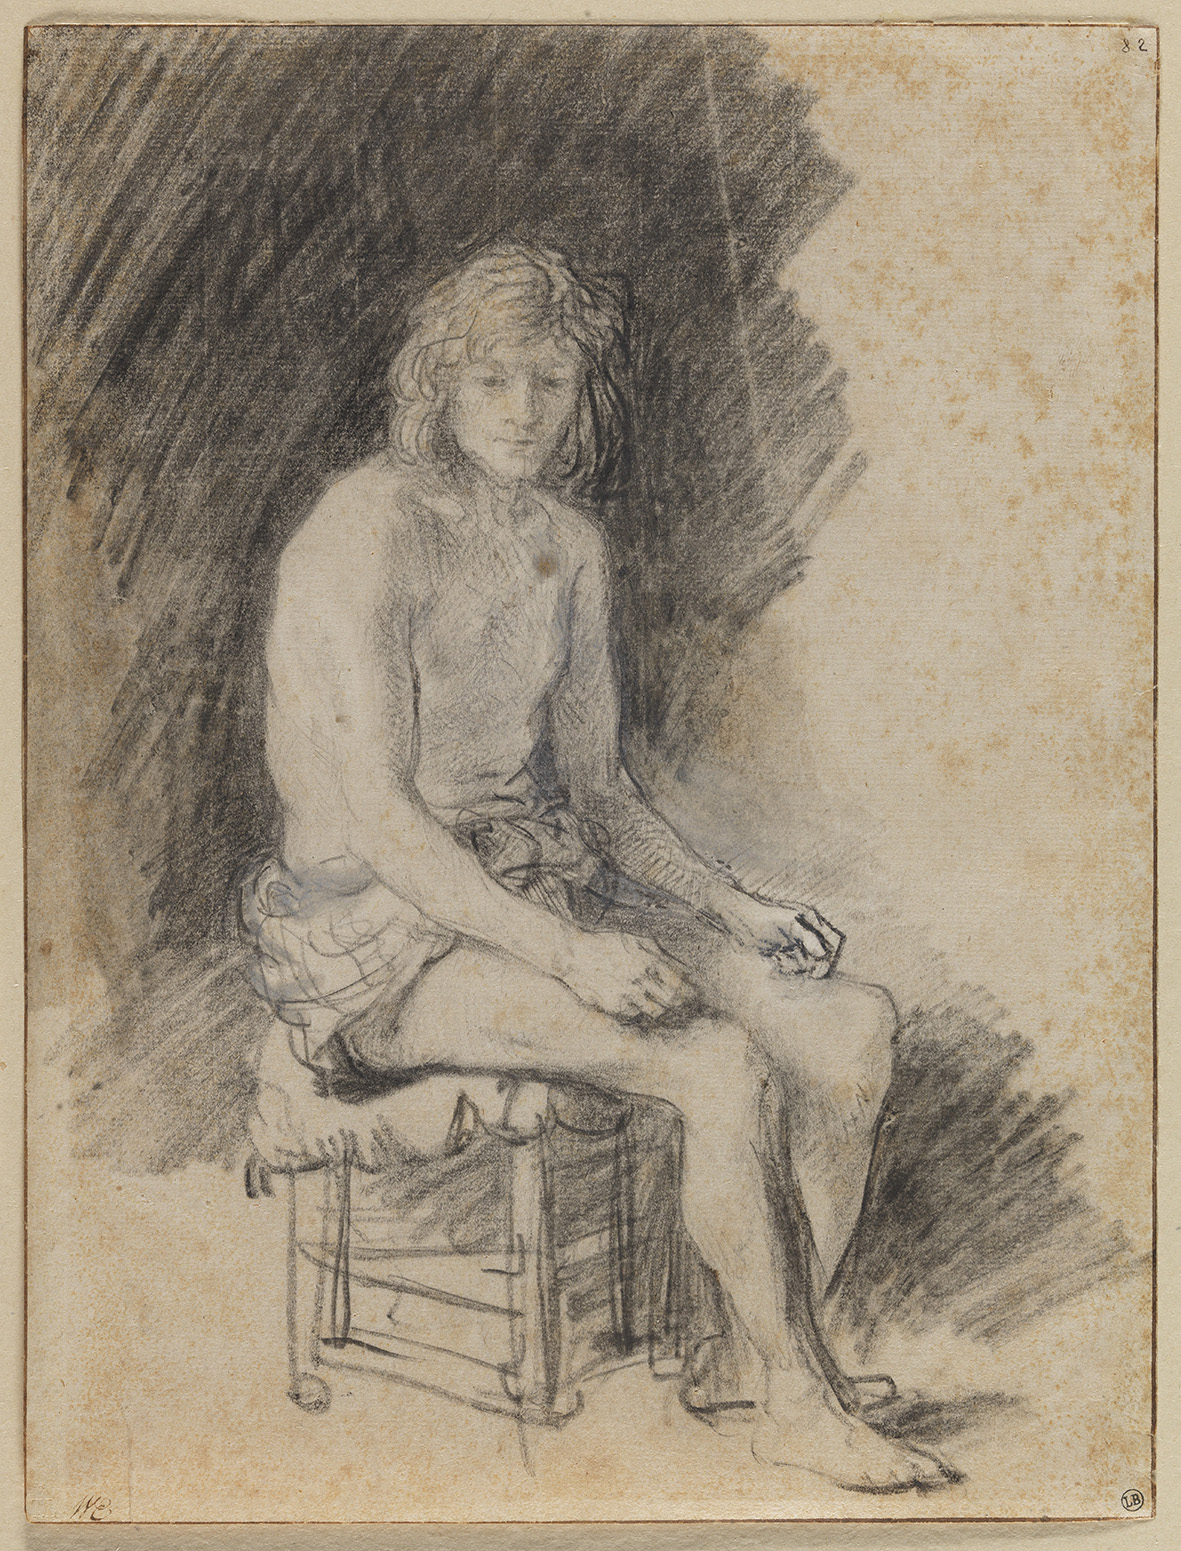 6. Rembrandt van Rijn (1606-1669) and an unknown pupil, Young Man Seated, black chalk, brown wash, heightened with white, 25 x 19 cm, inv. 646